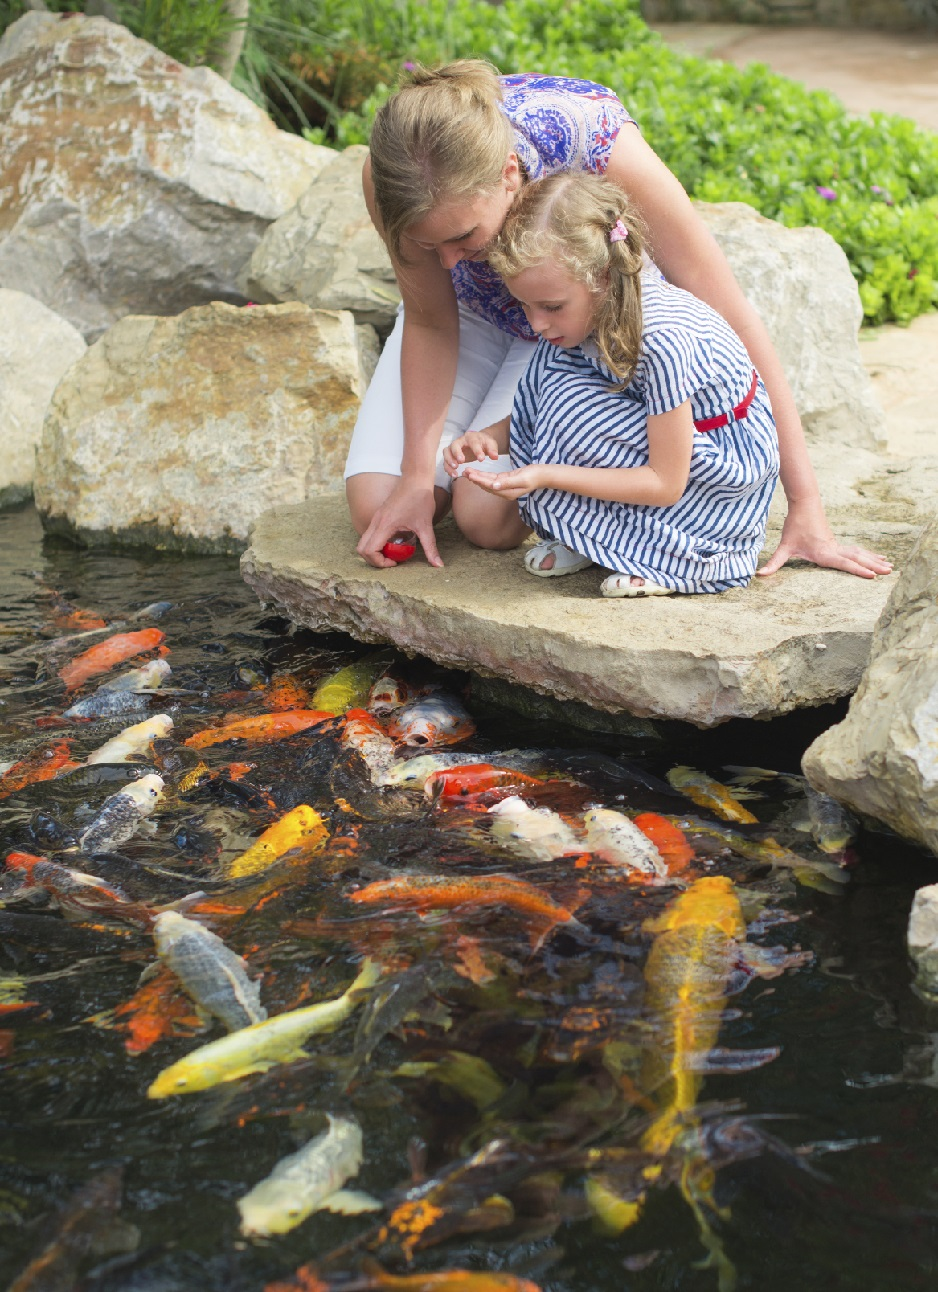 Pond fish for your backyard pond blain 39 s farm fleet blog for Types of pond design